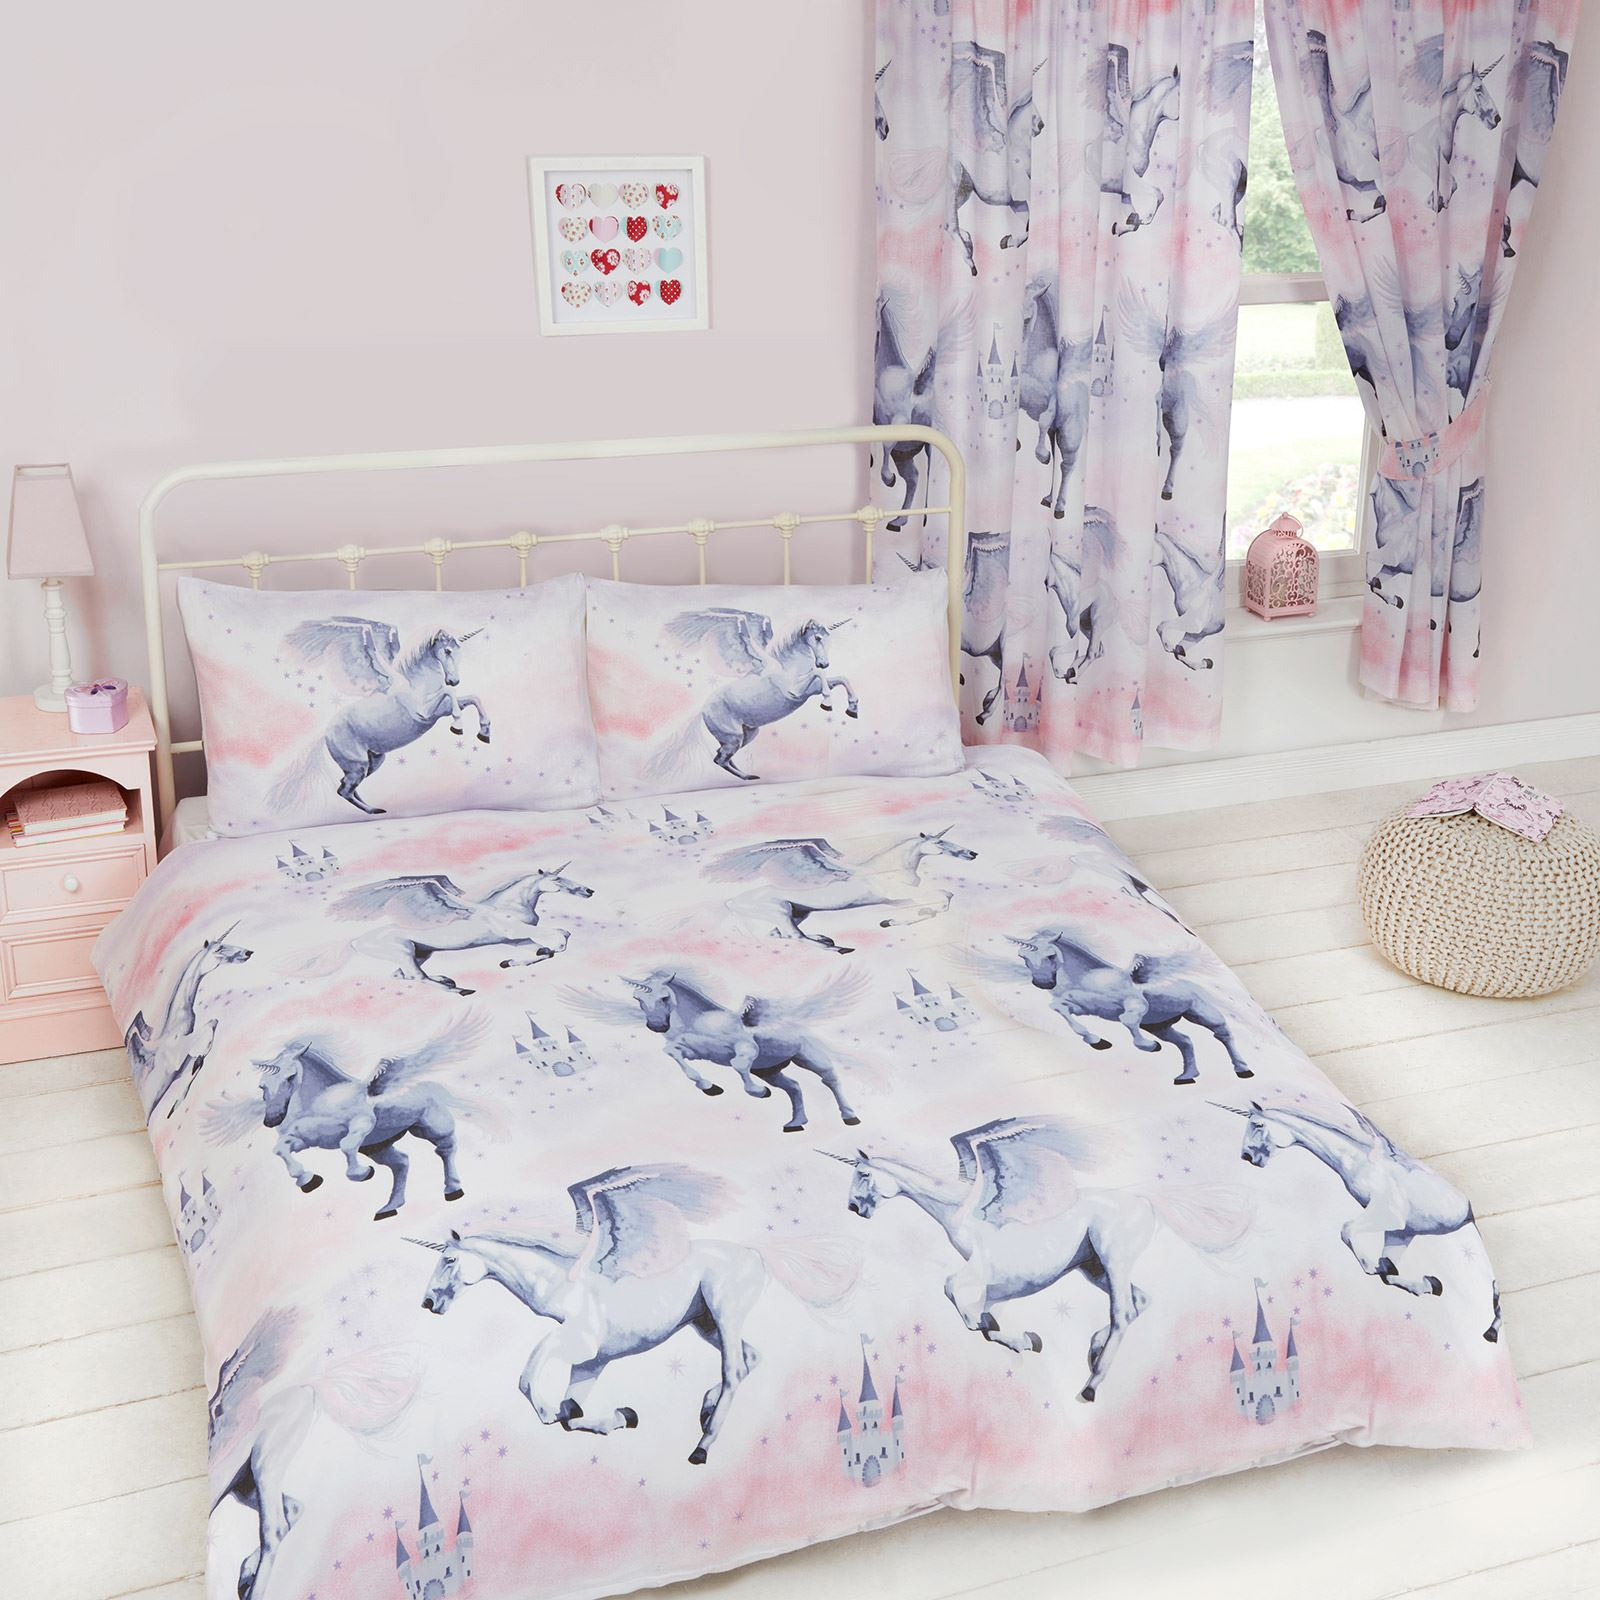 m dchen bettbez ge bettw sche junior einzeln doppel einhorn v gel ballerina ebay. Black Bedroom Furniture Sets. Home Design Ideas